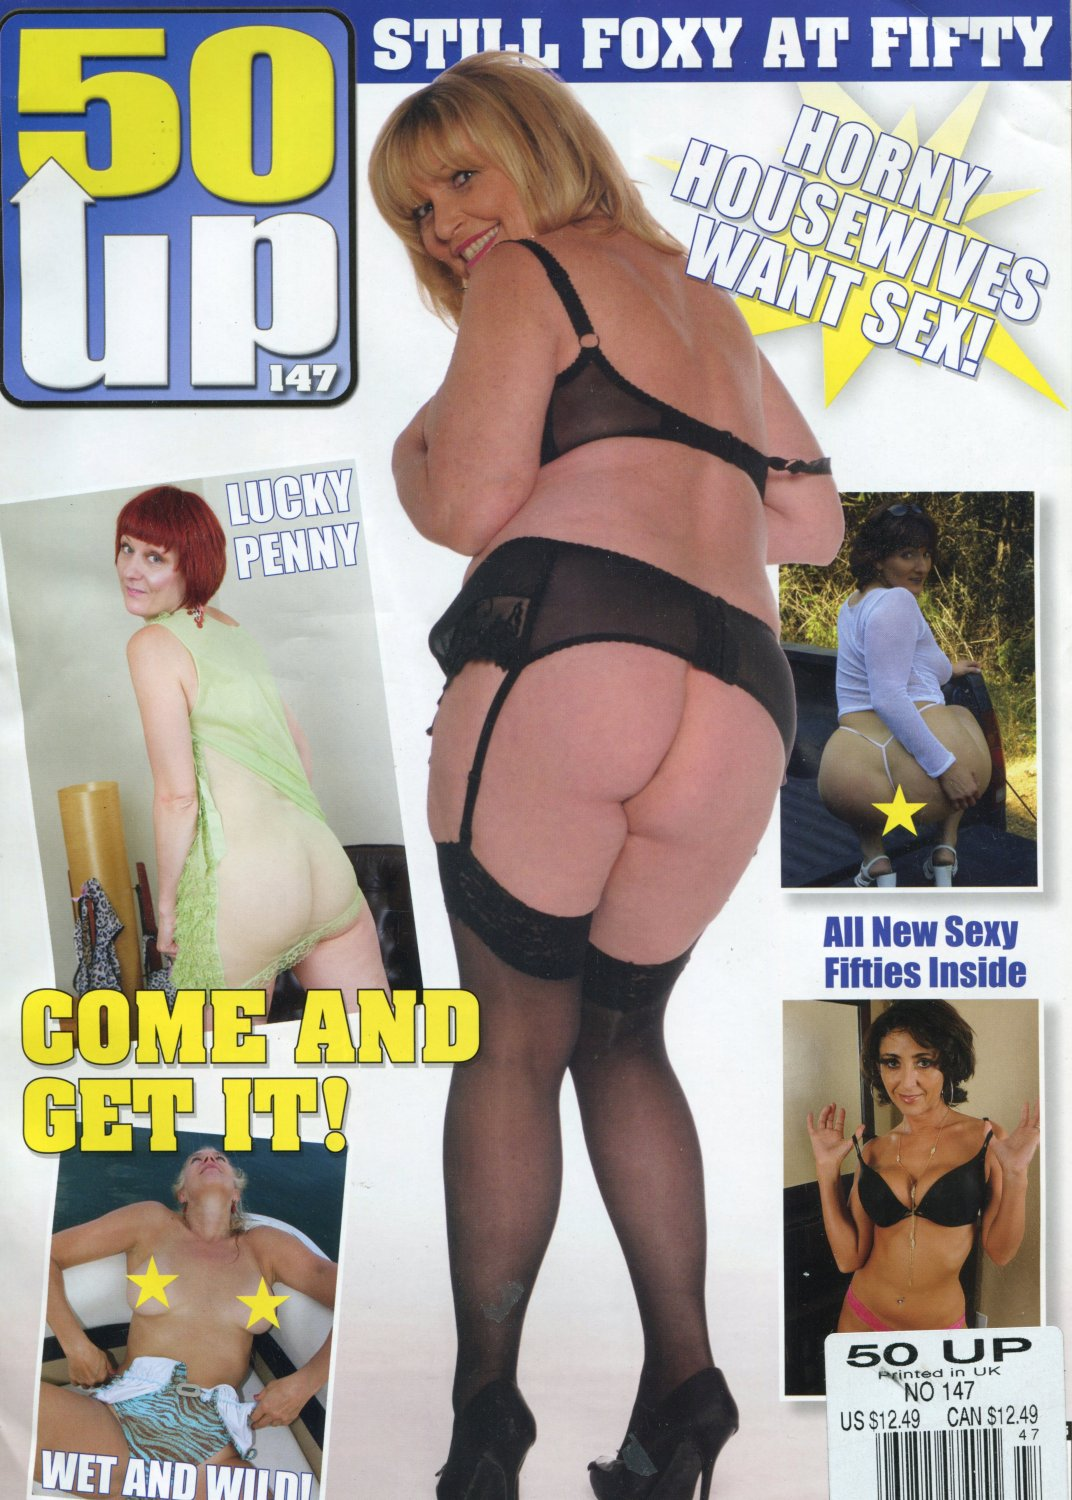 50 UP - ISSUE NO. 147 - Free Shipping